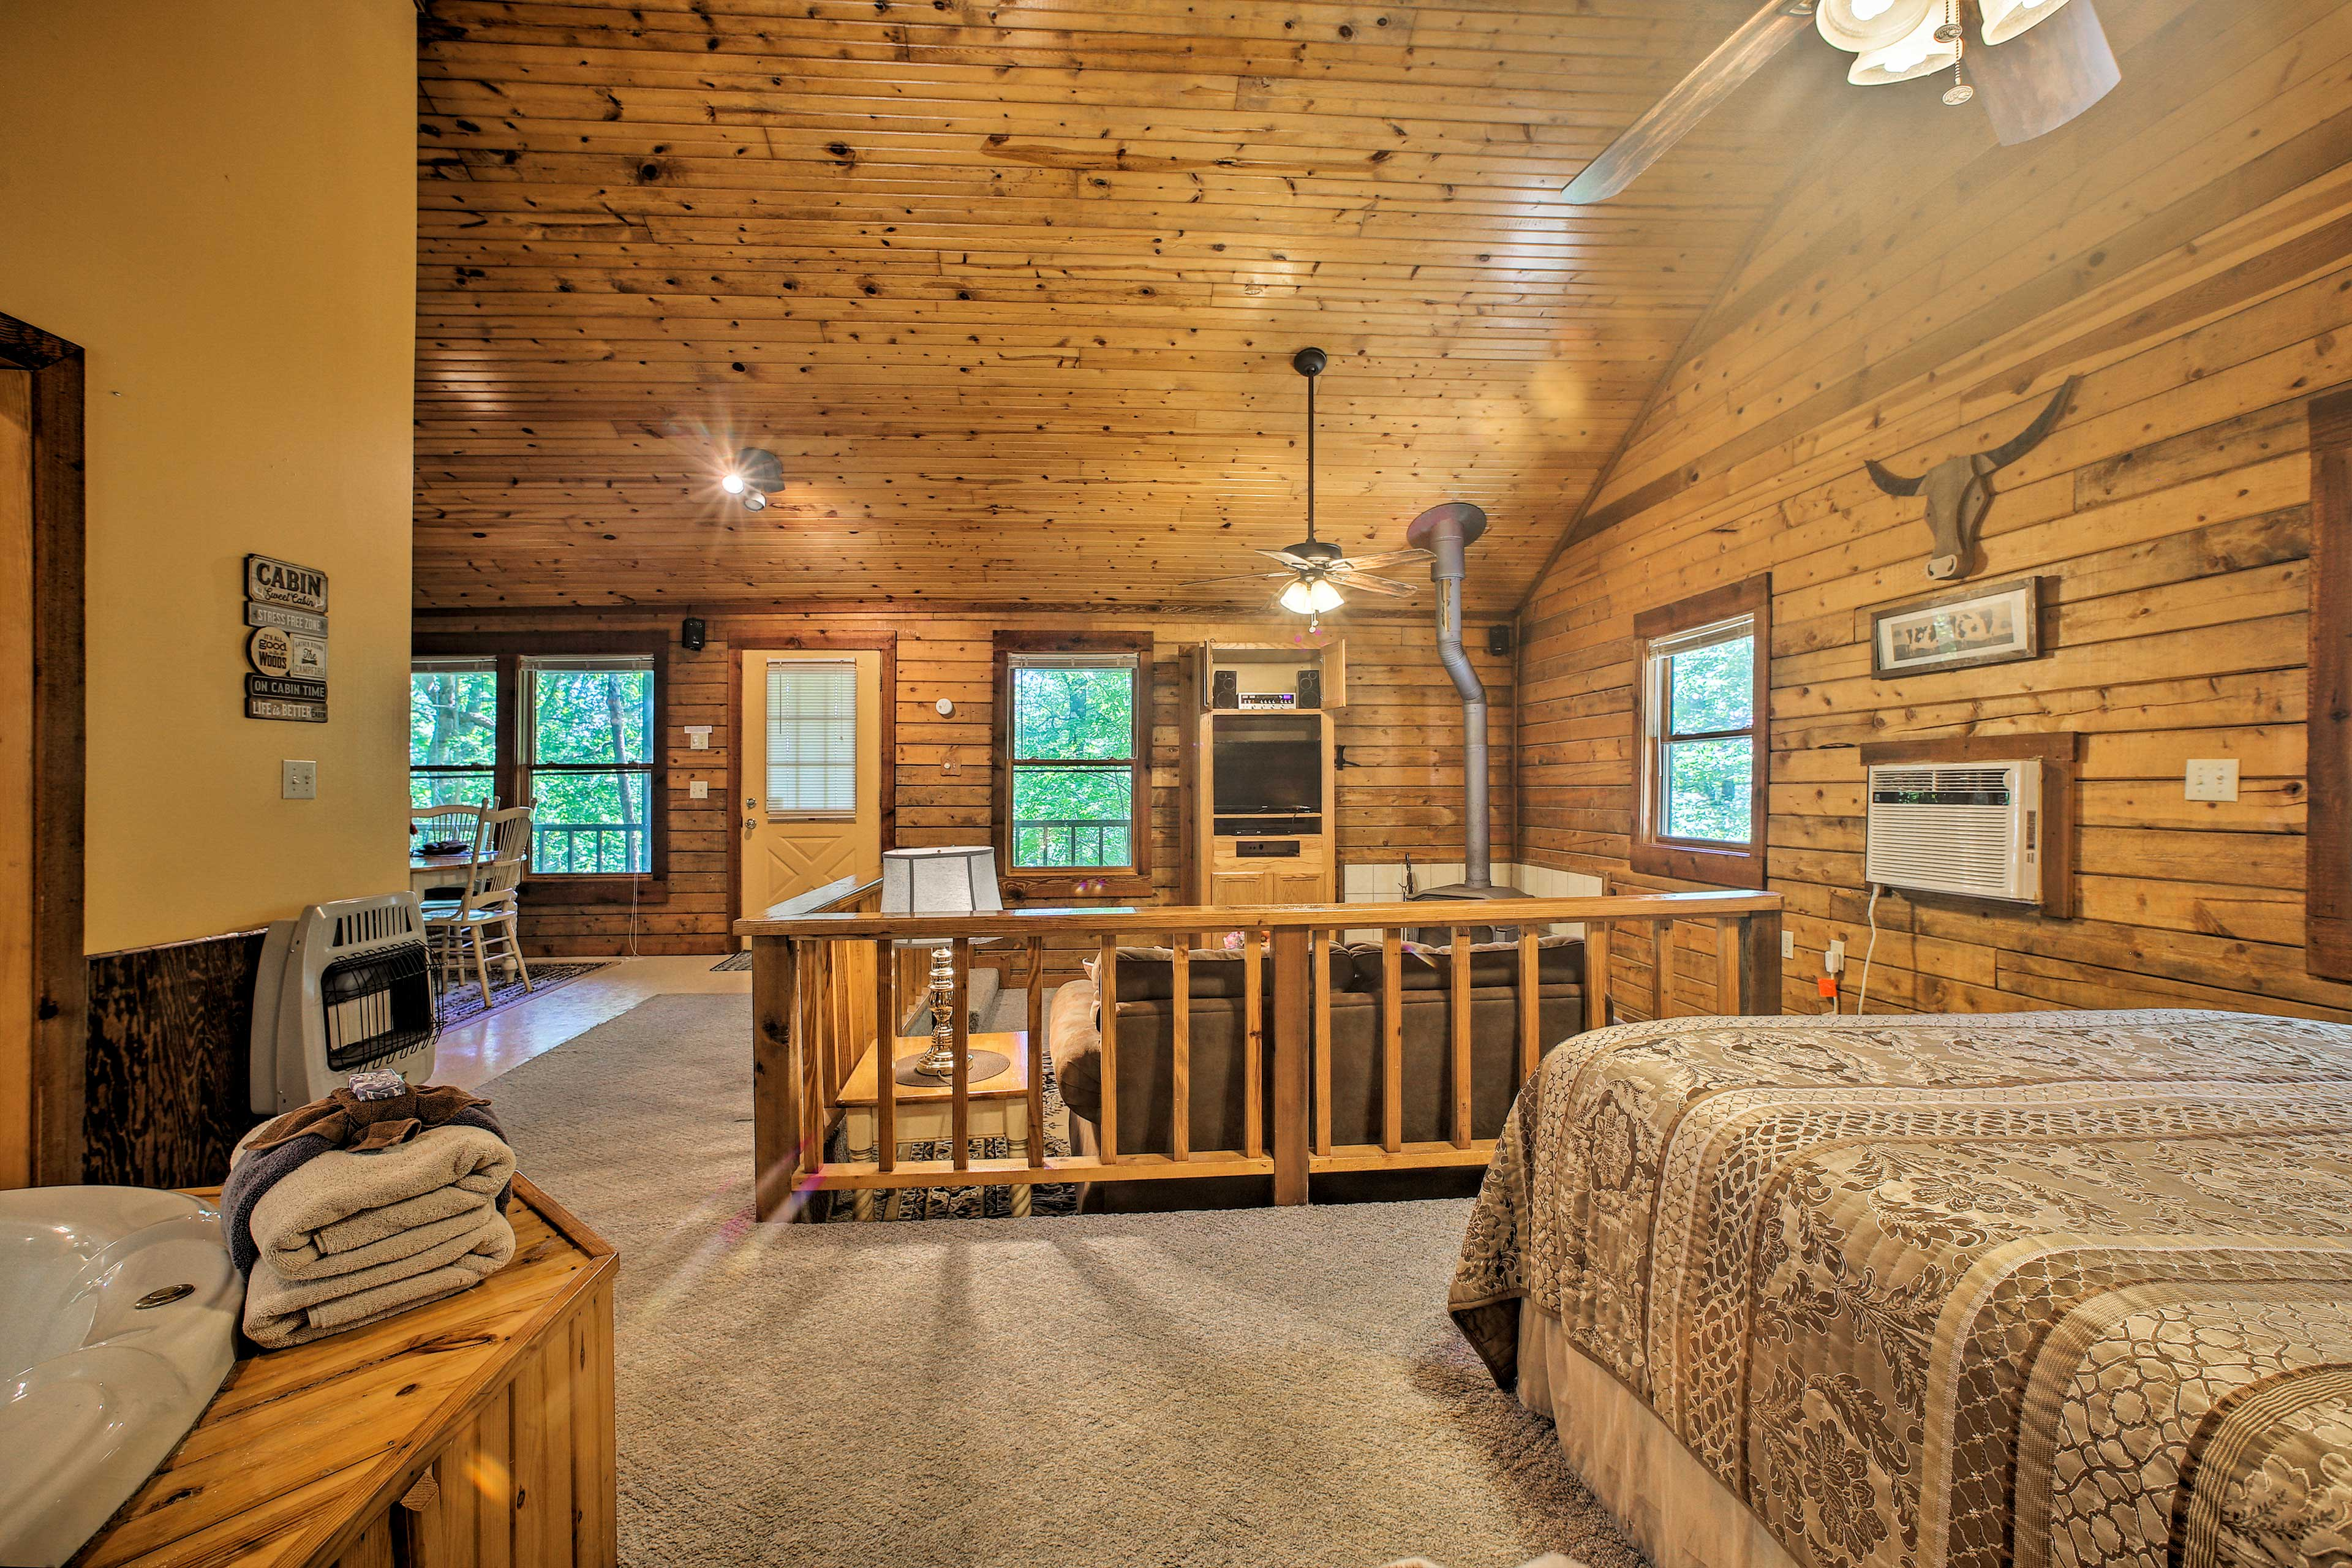 Wood paneling adds a rustic ambiance.